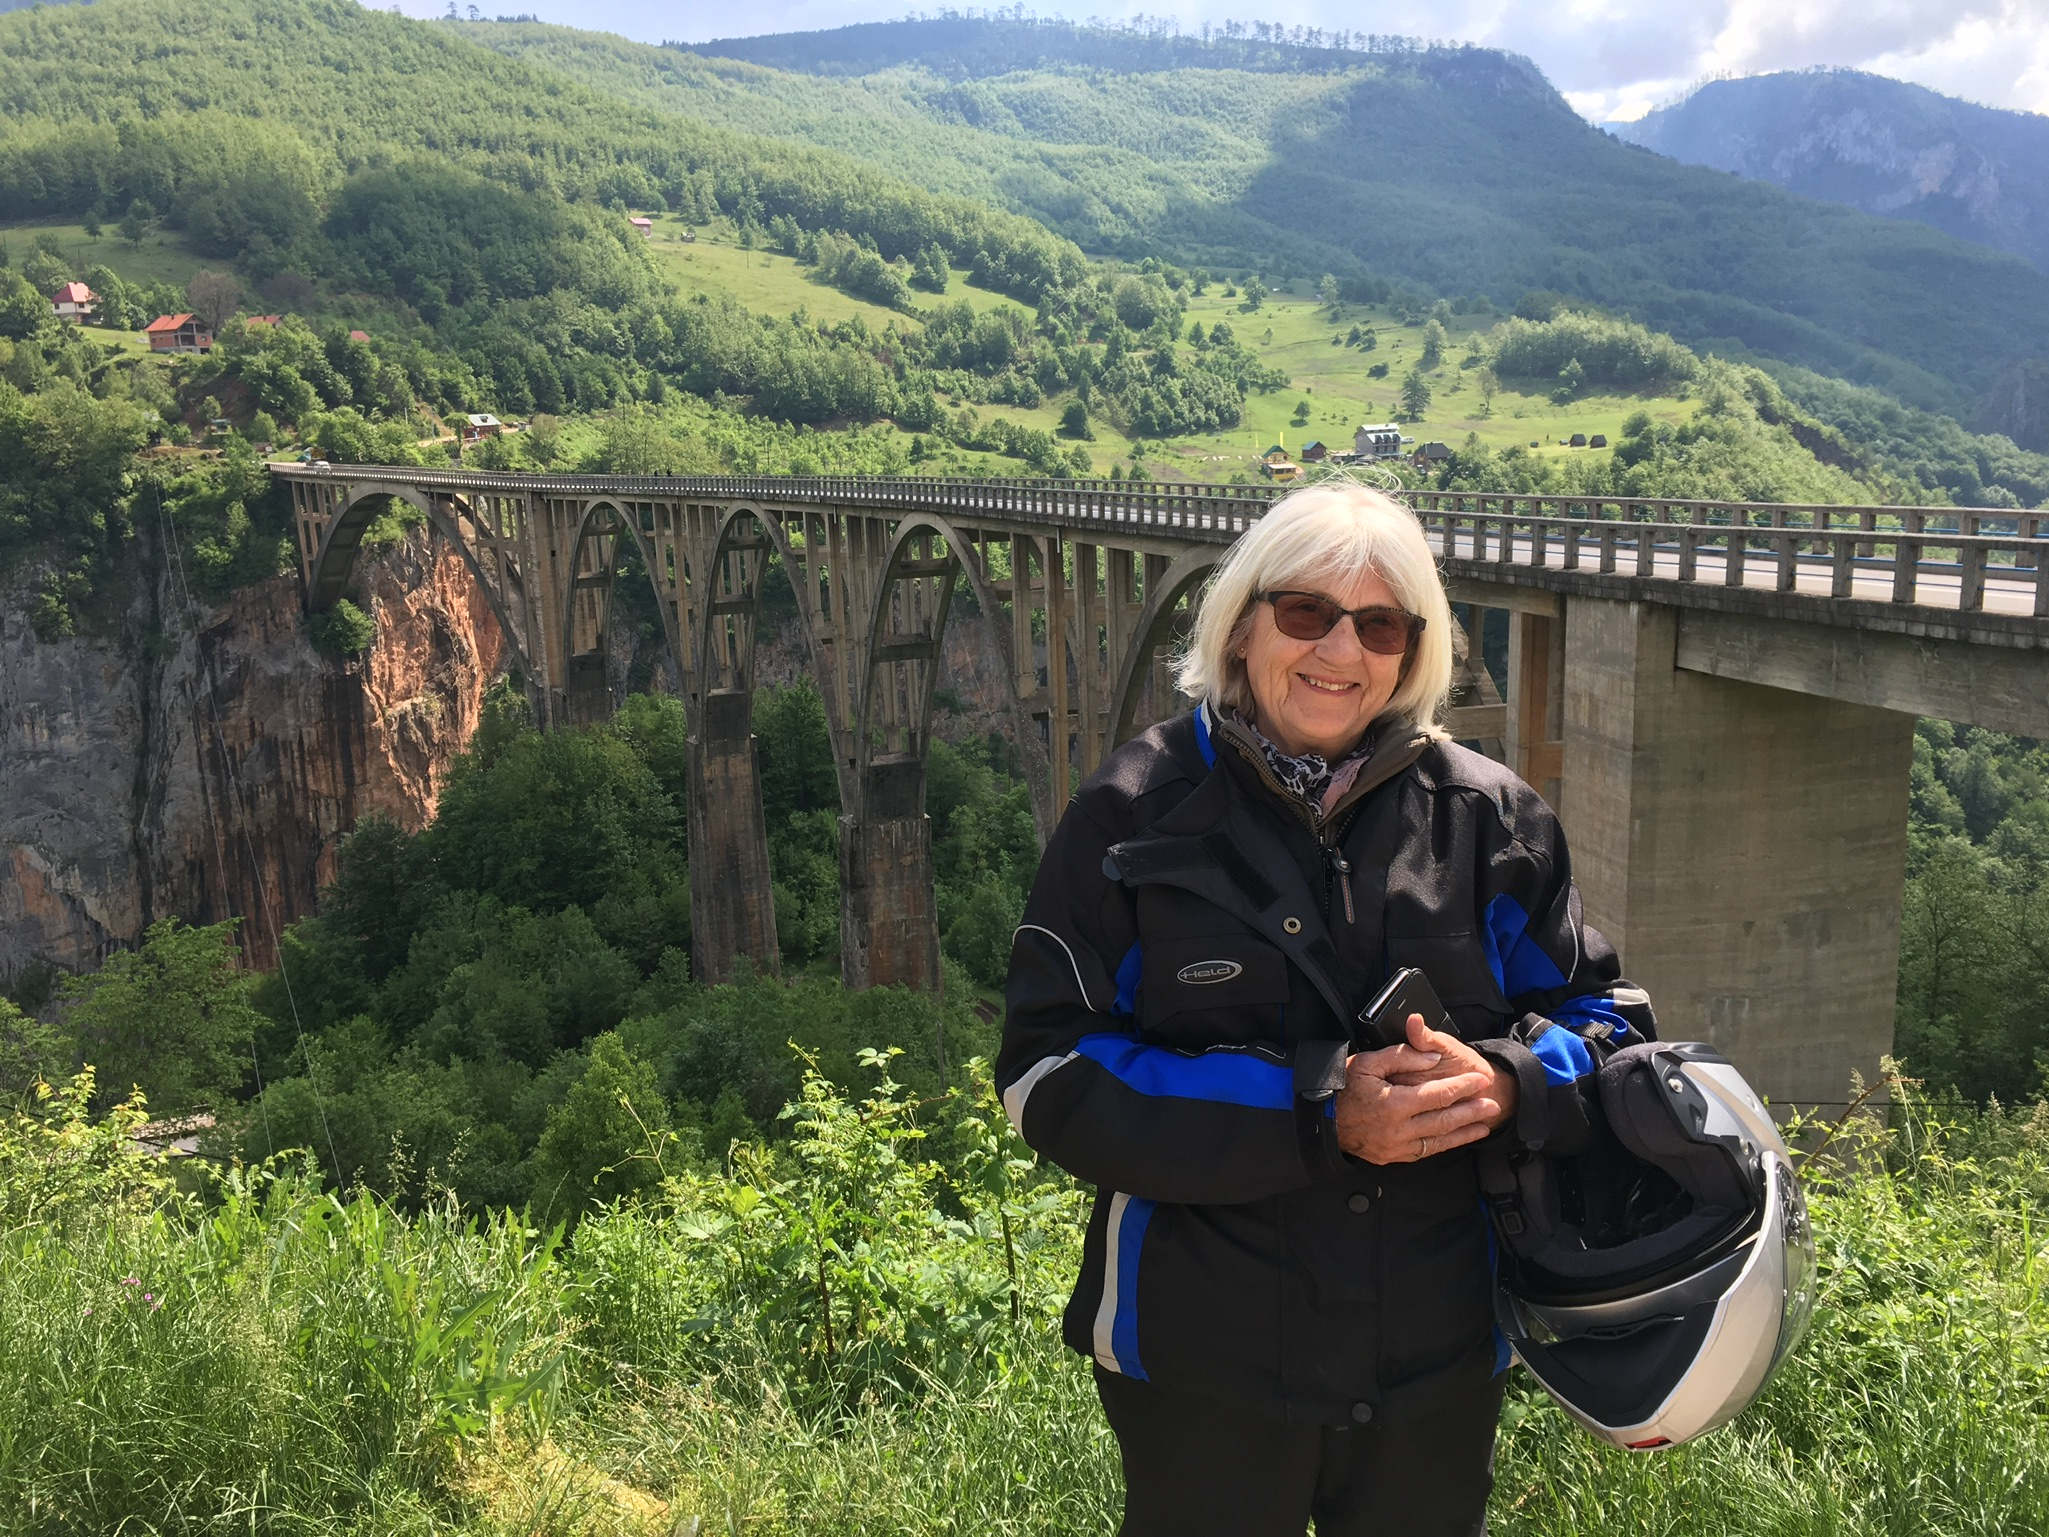 My other at the bridge over Piva canyon